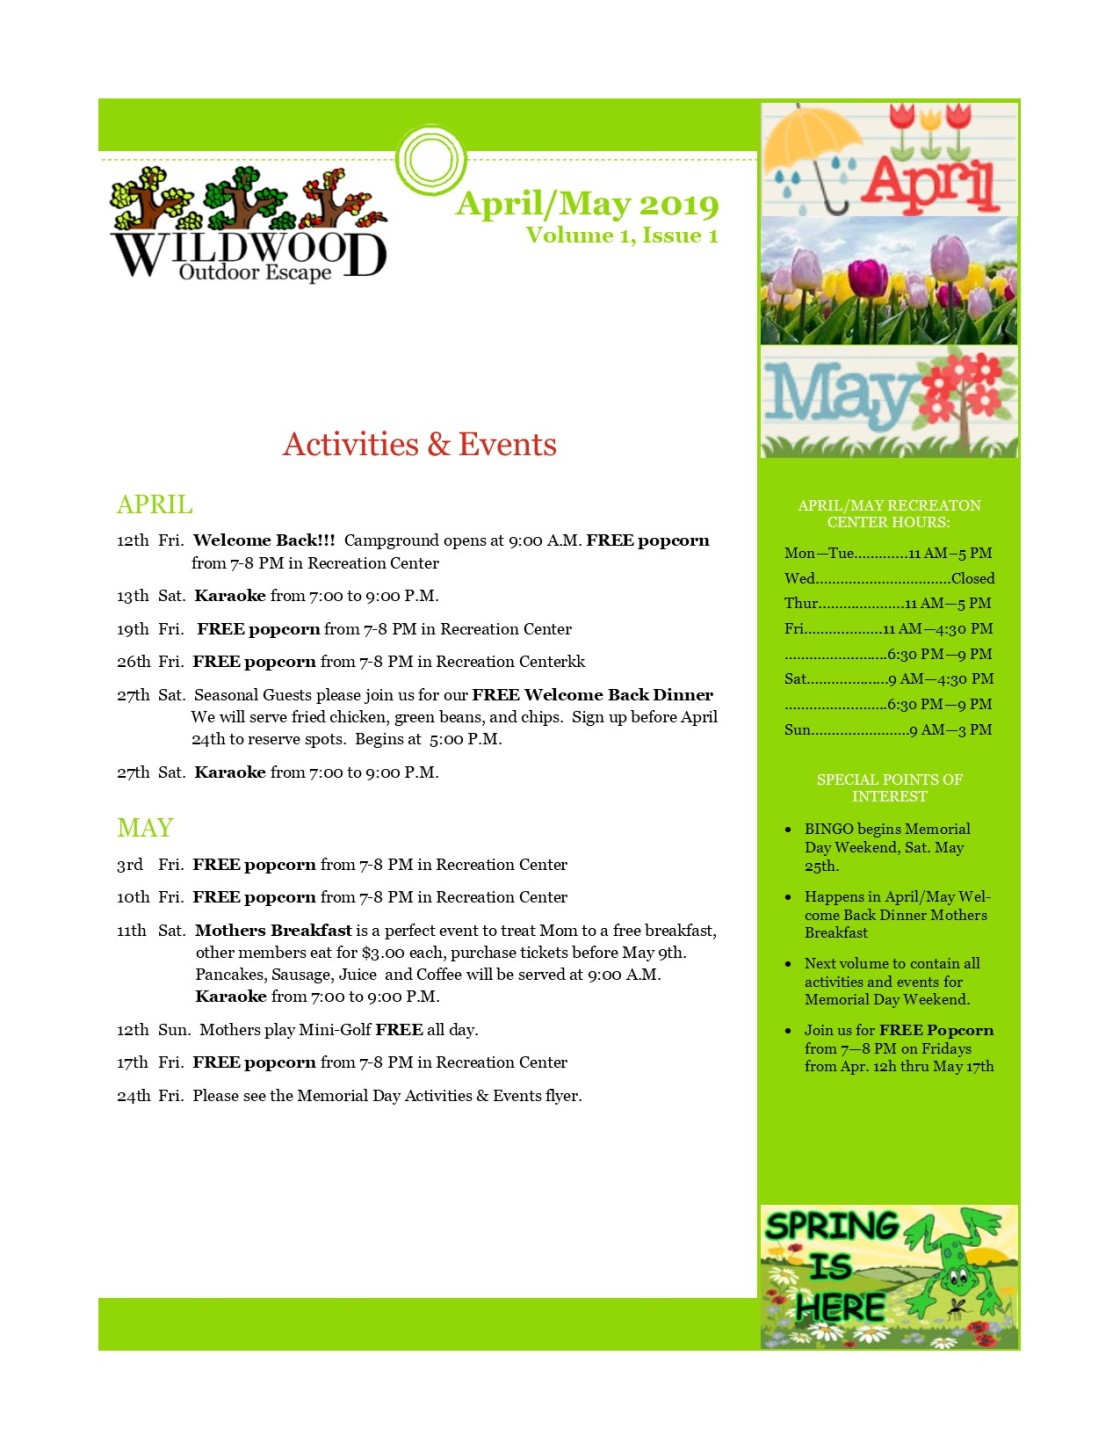 Image of activities & Events page for April and May